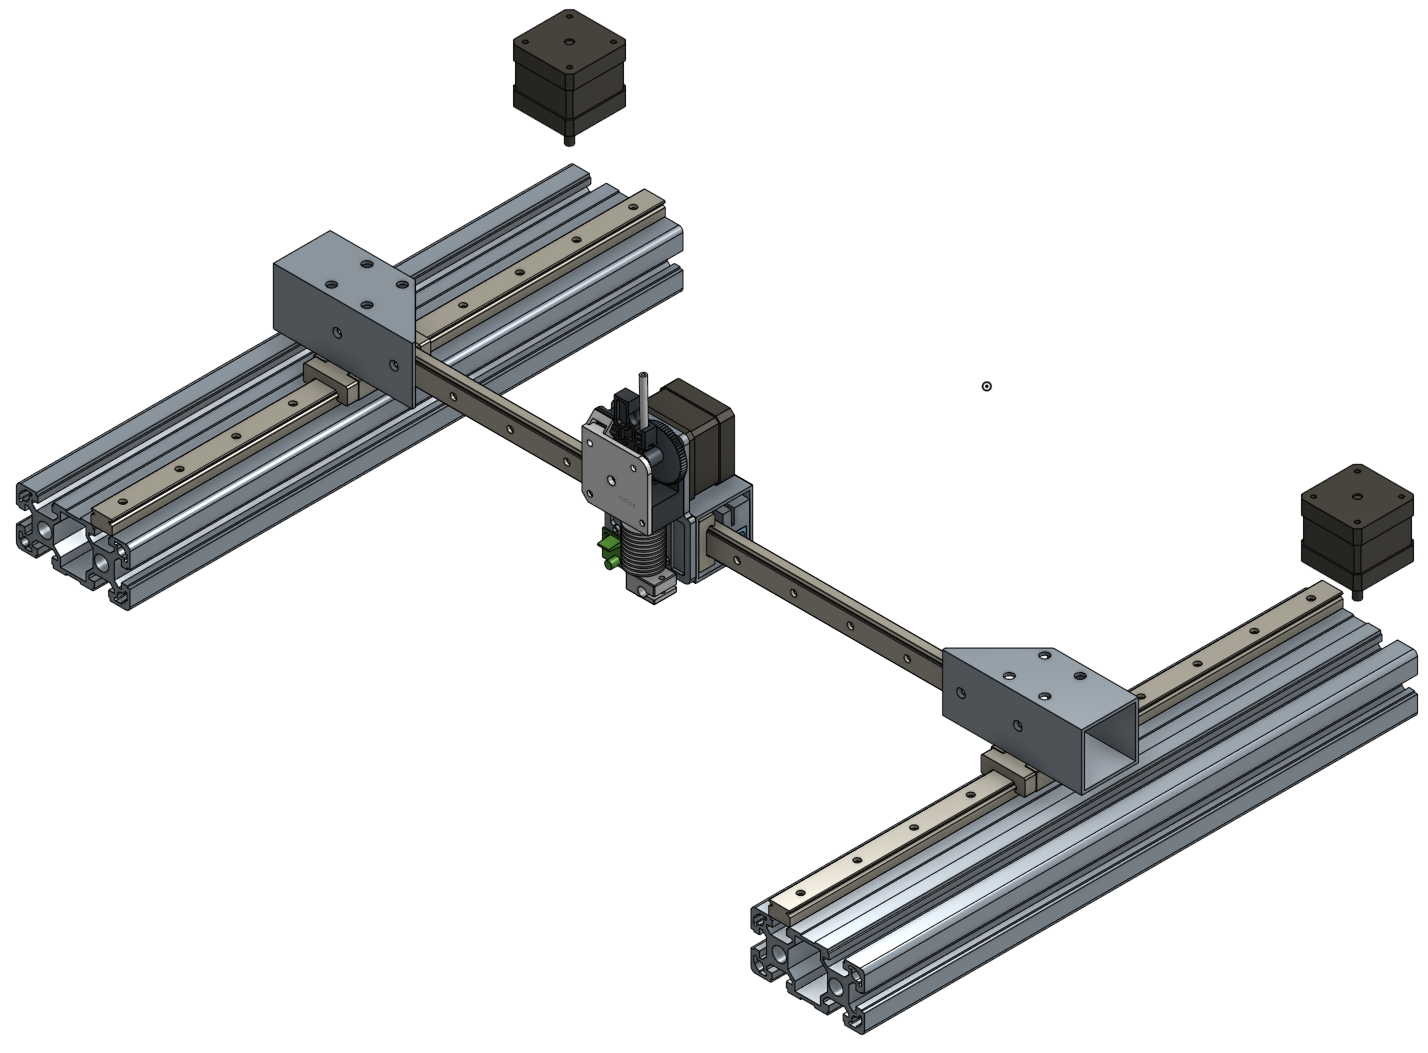 New CoreXY Design - Mounting Linear Guide Rail on Aluminium Extrusion